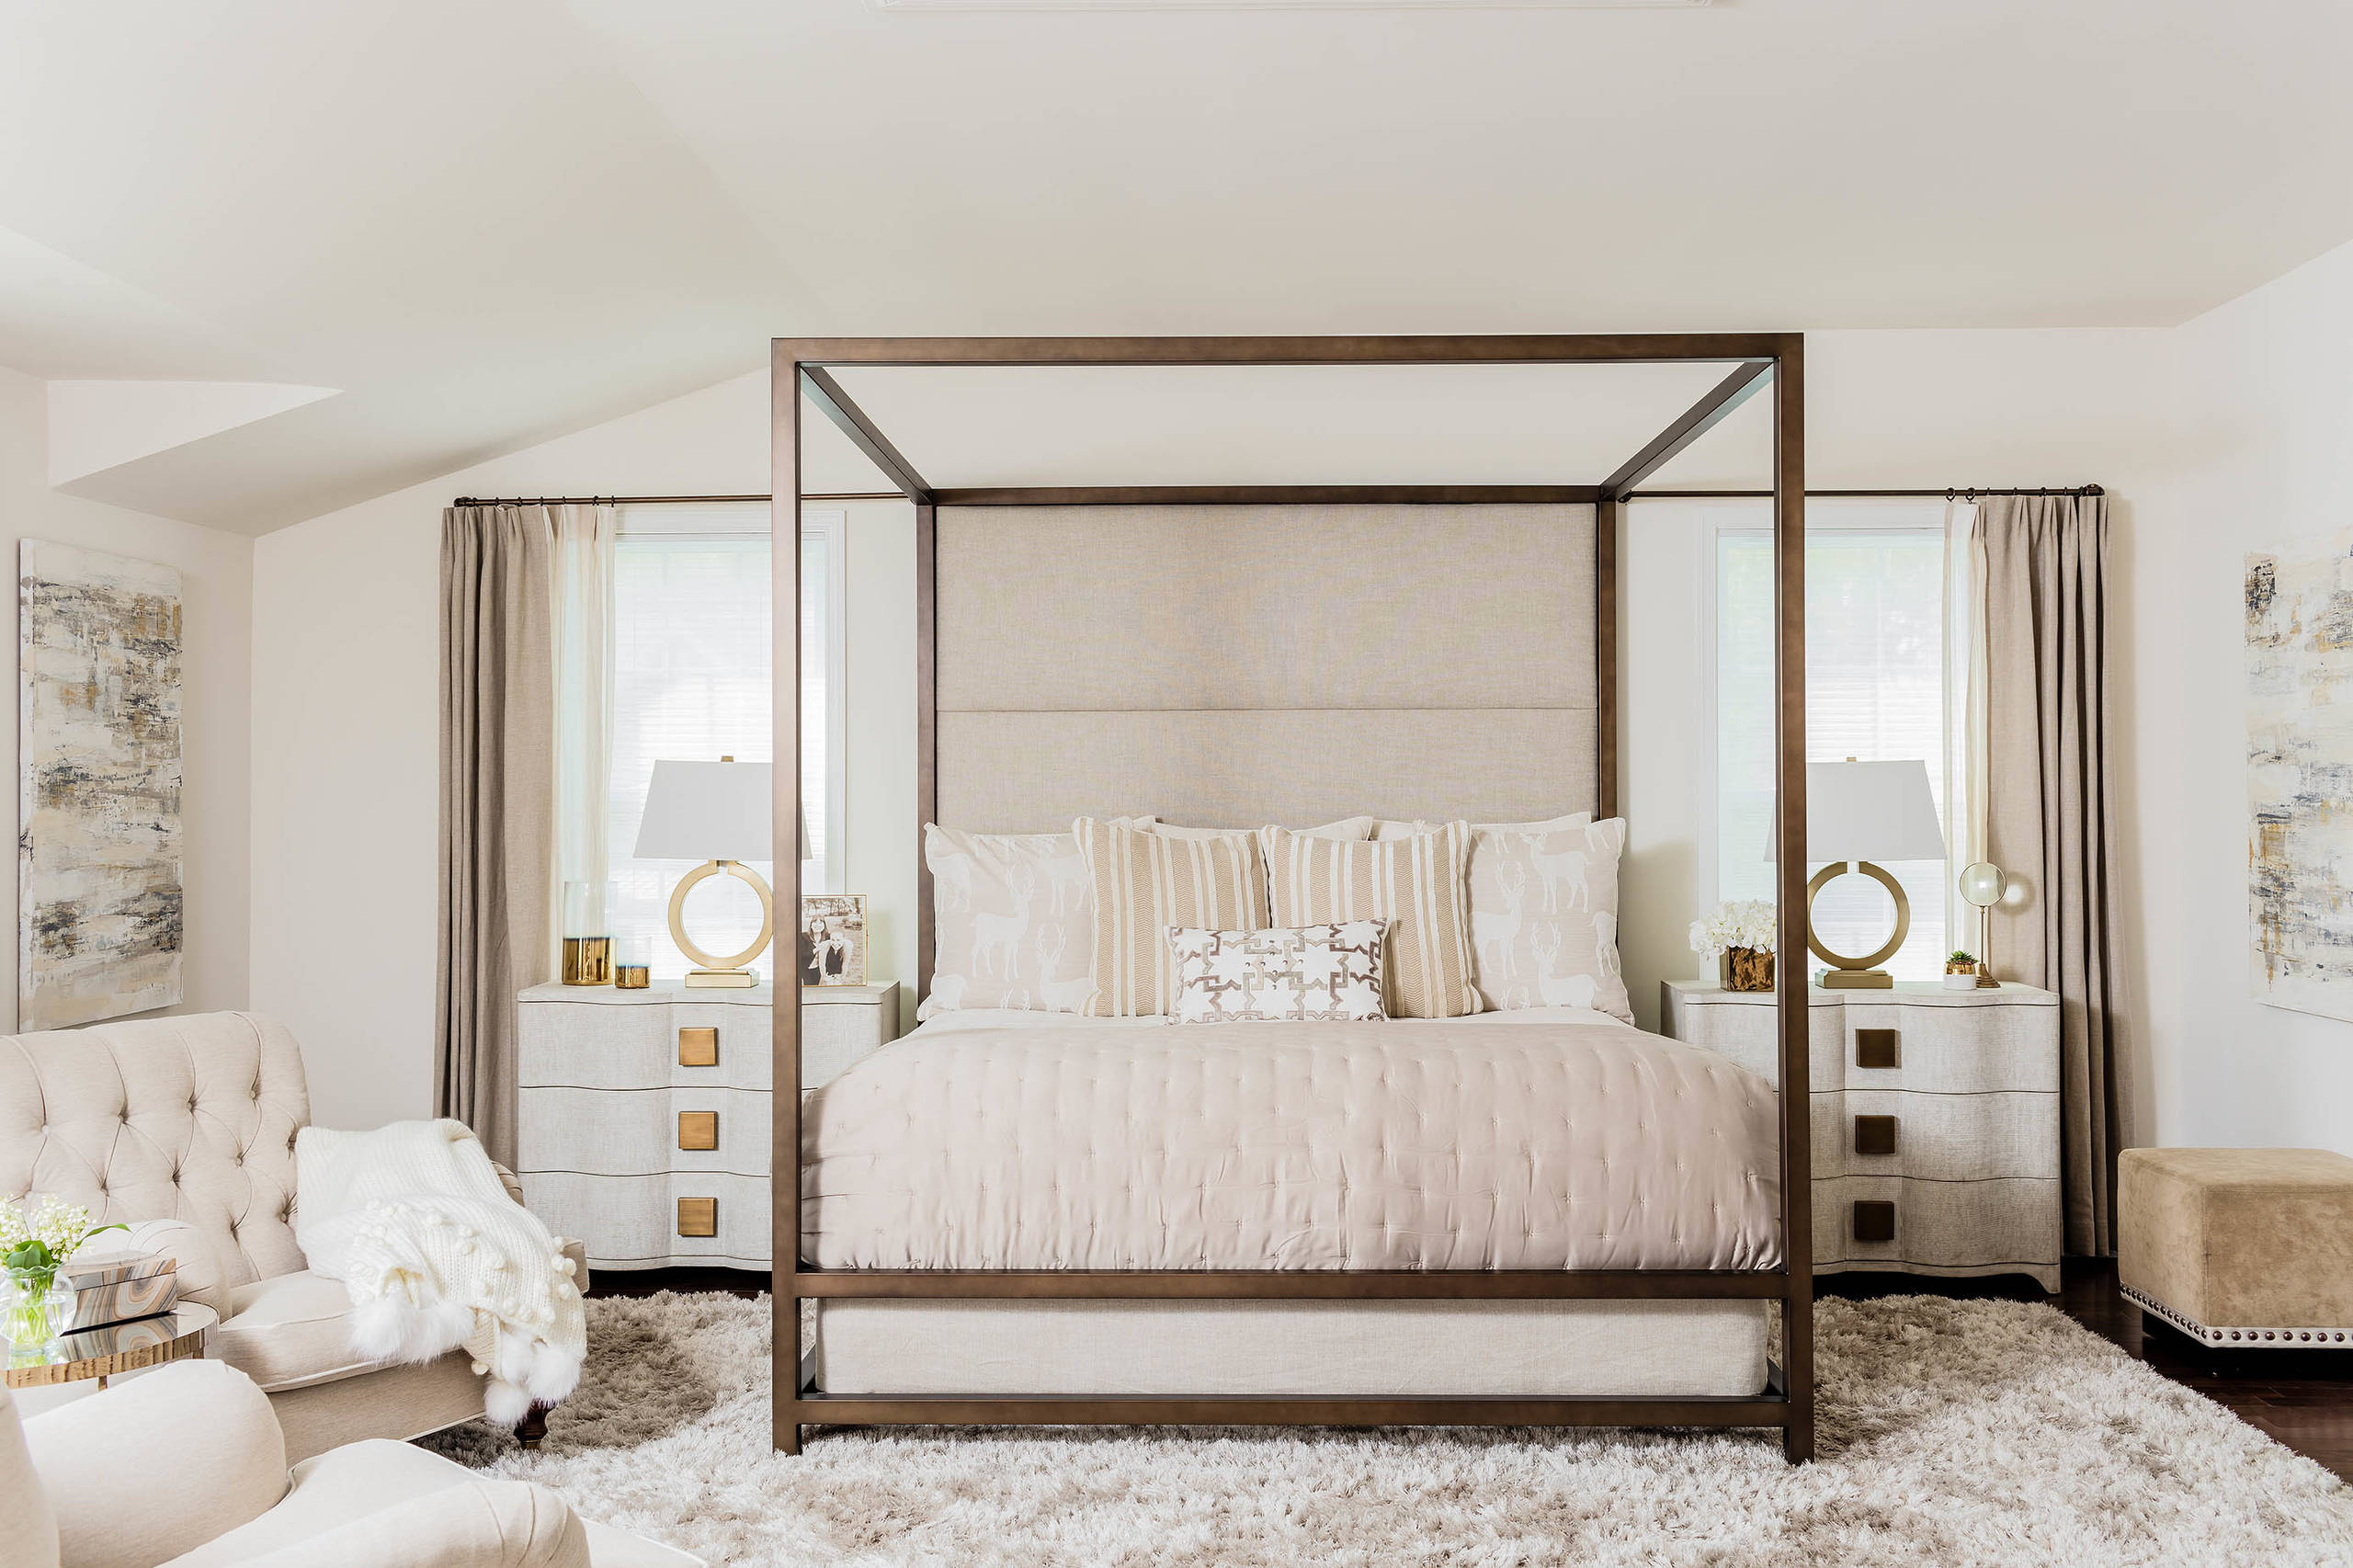 transitional-bedroom four poster bed copper off white warm cream color palette glam bedroom ideas gold side table traditional furniture feminine neutral unisex decor shop room ideas